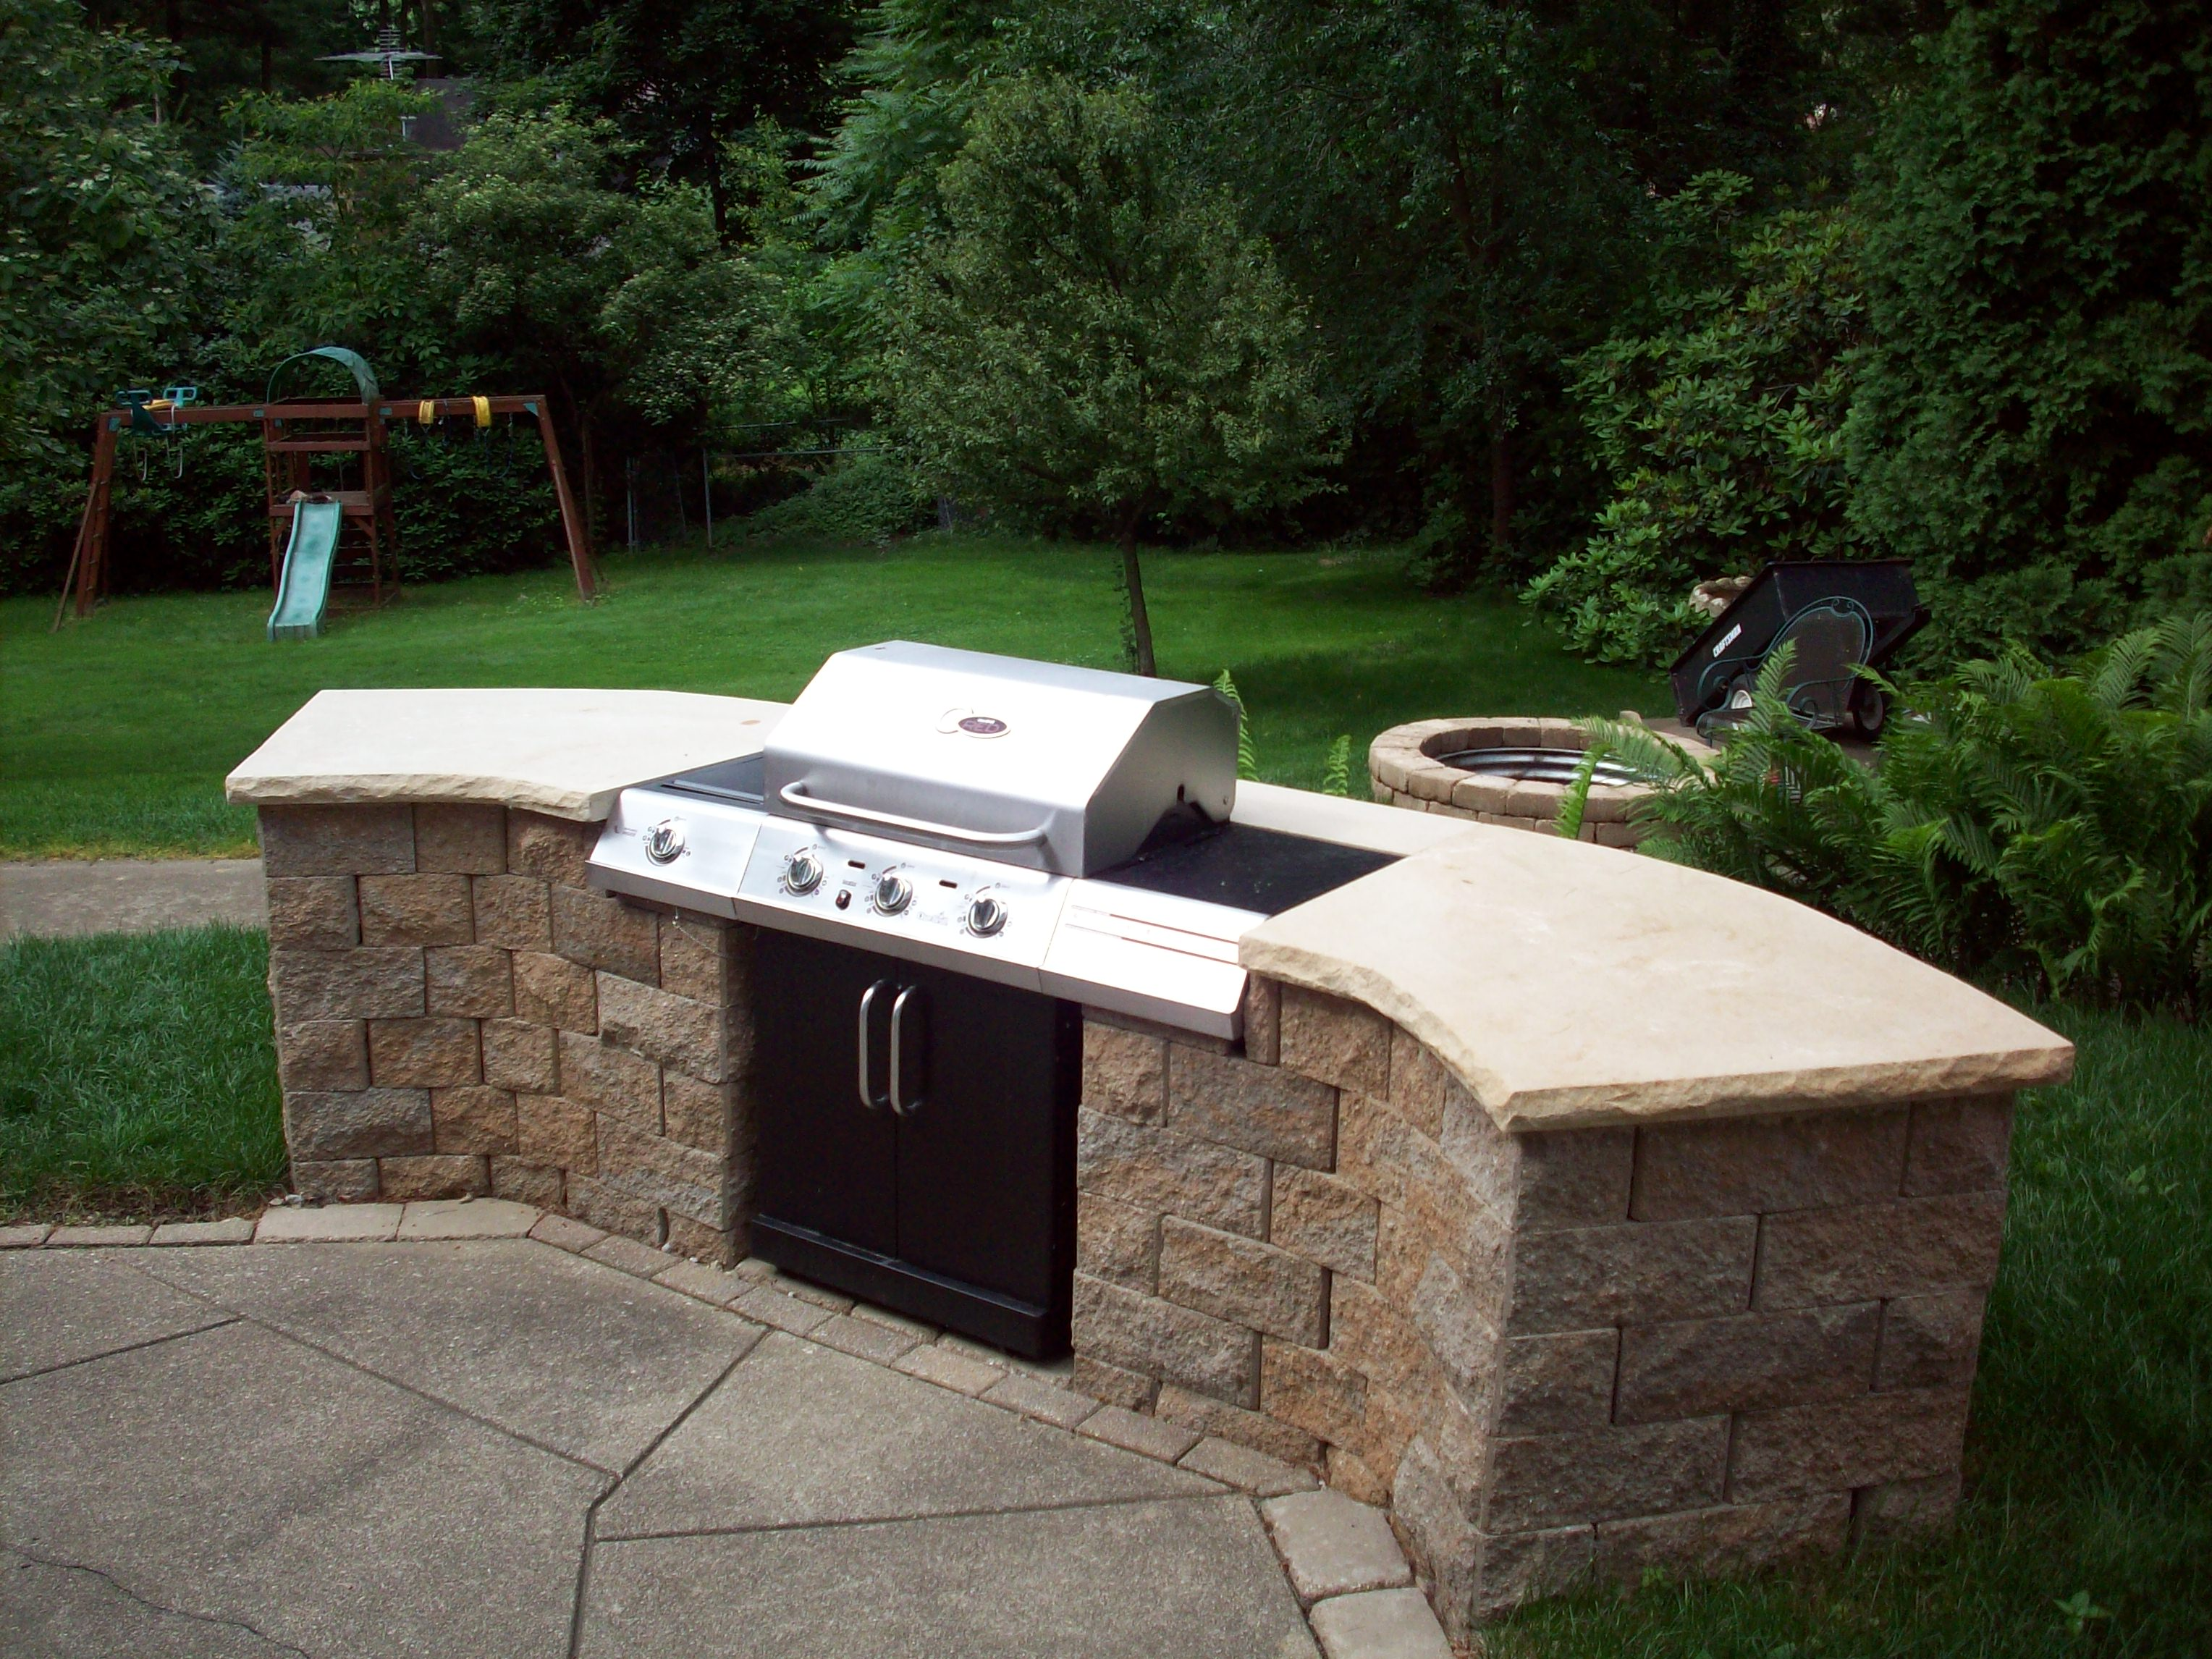 Amazing Outdoor Grills Stone Built In 3056 x 2292 · 1233 kB · jpeg